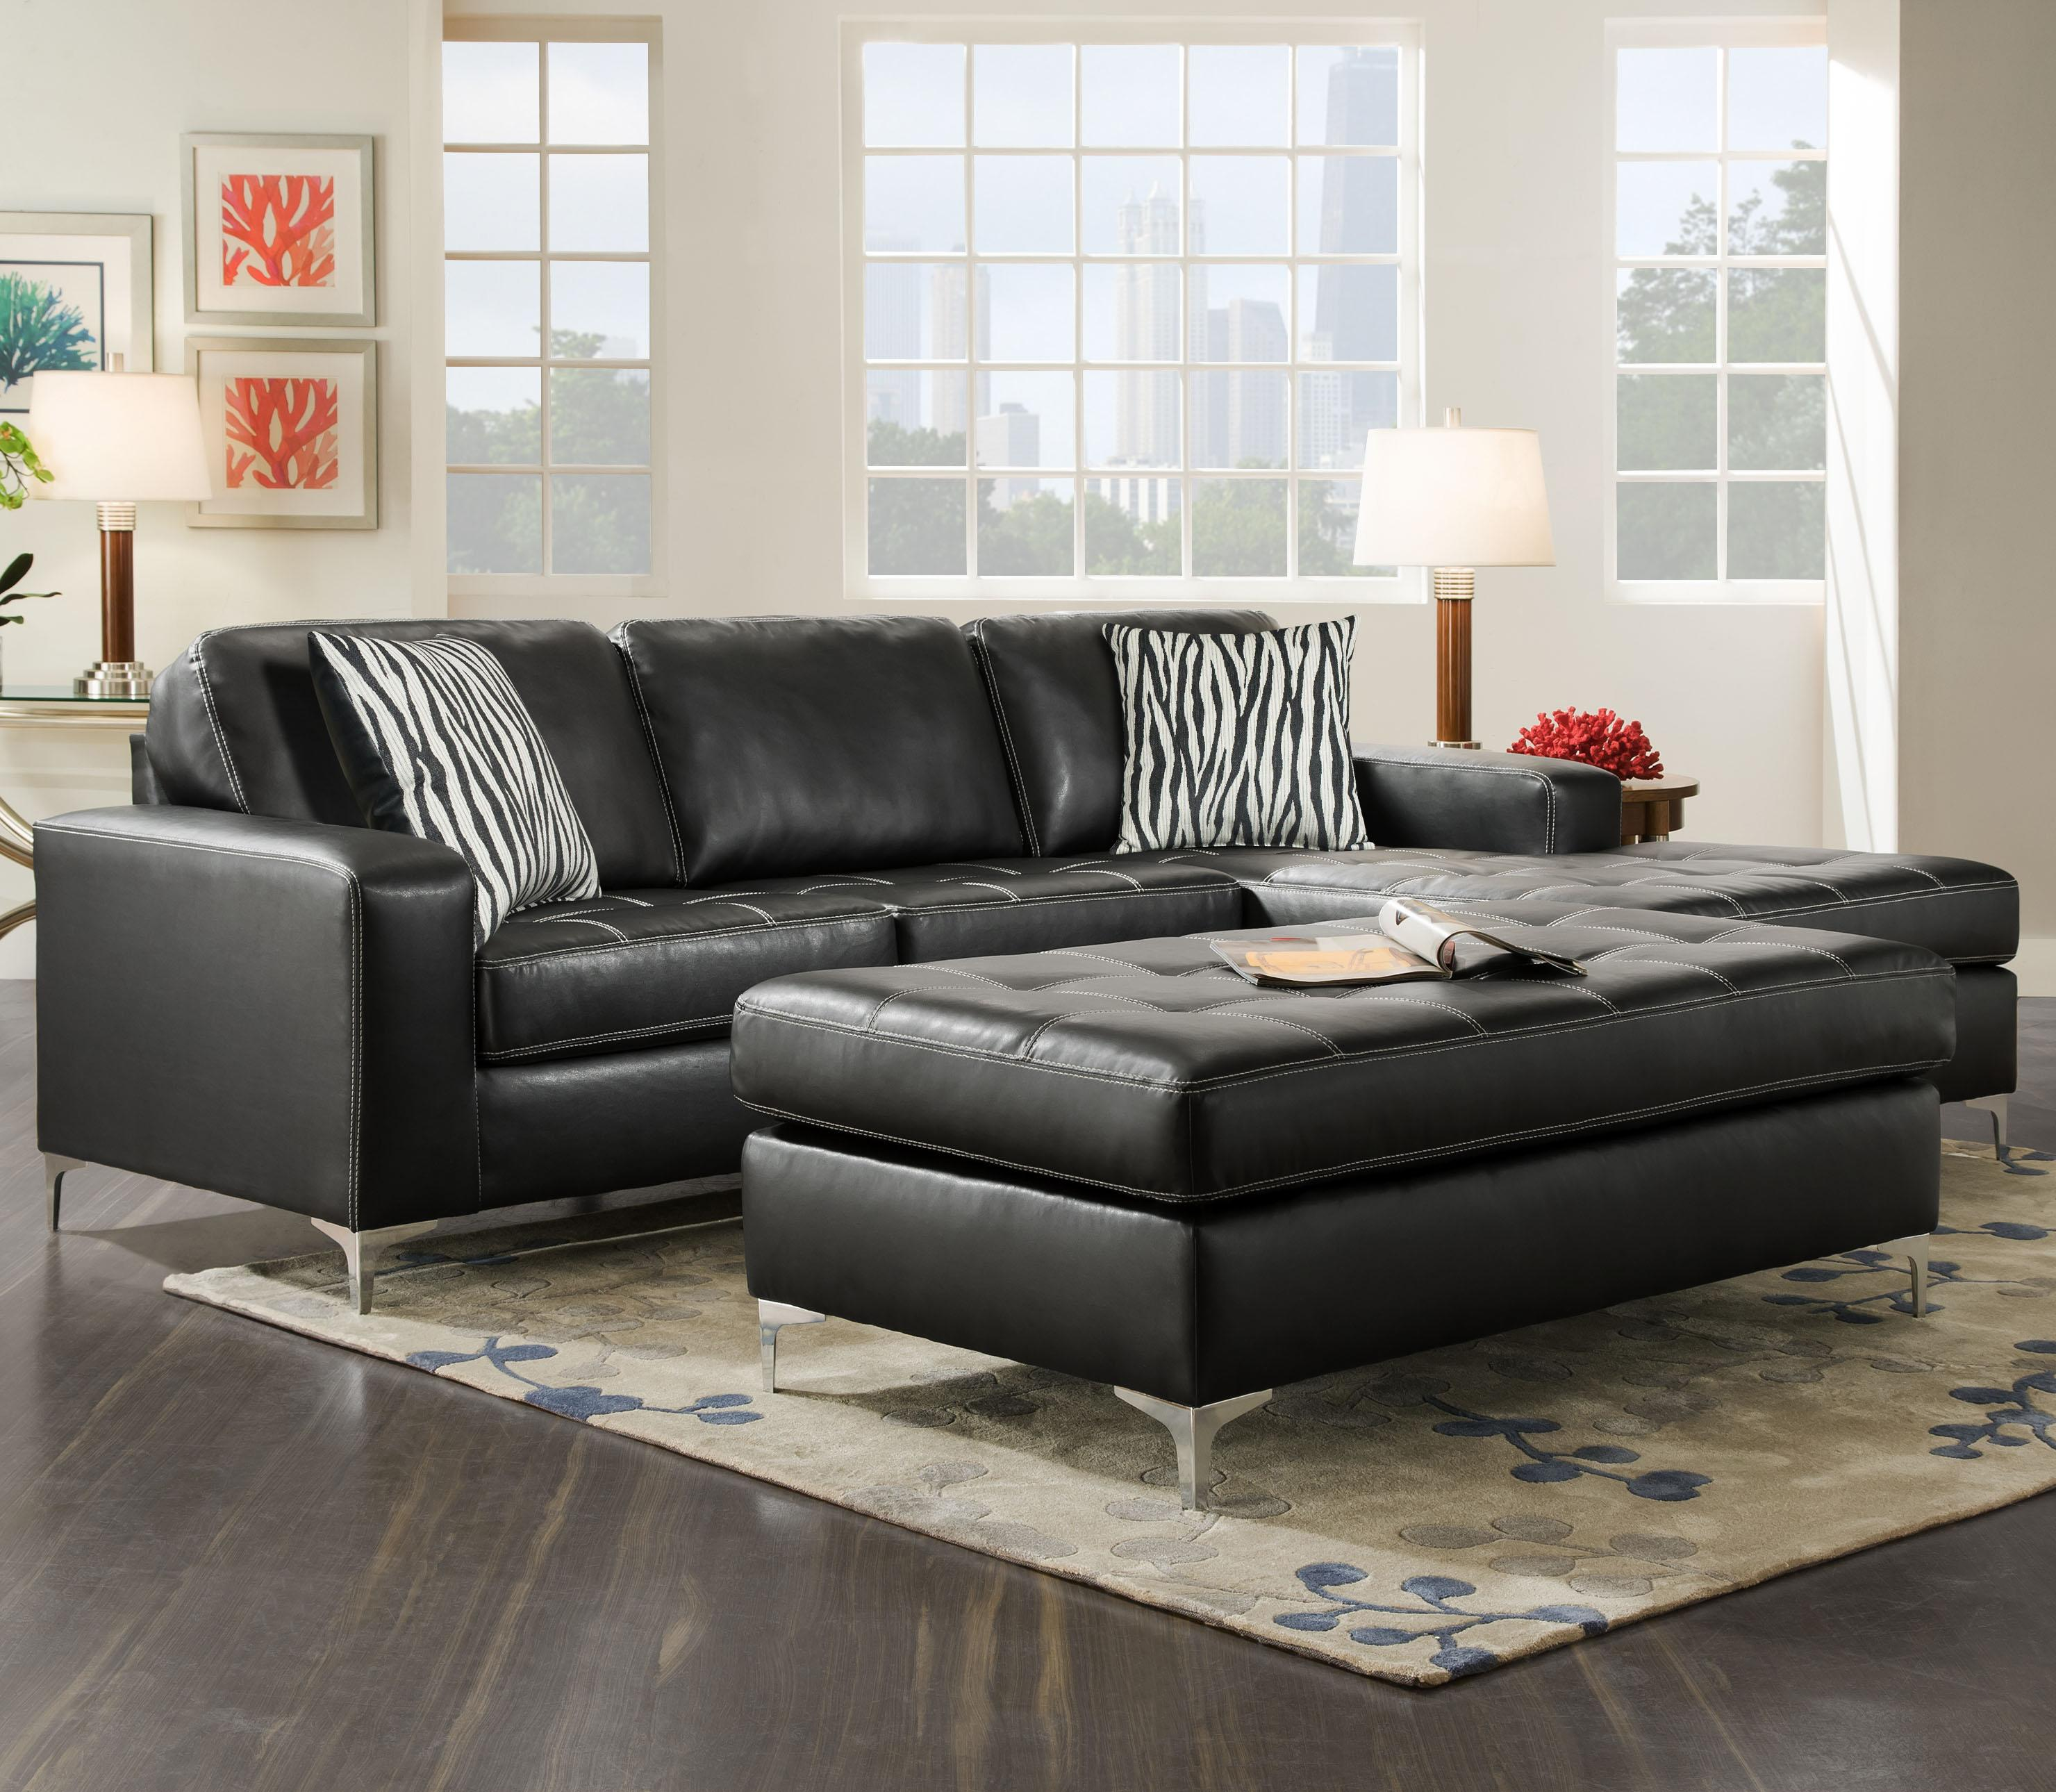 American Furniture 7400 Three Seat Sectional with Right Side Chaise - Item Number: 7410+40-8811